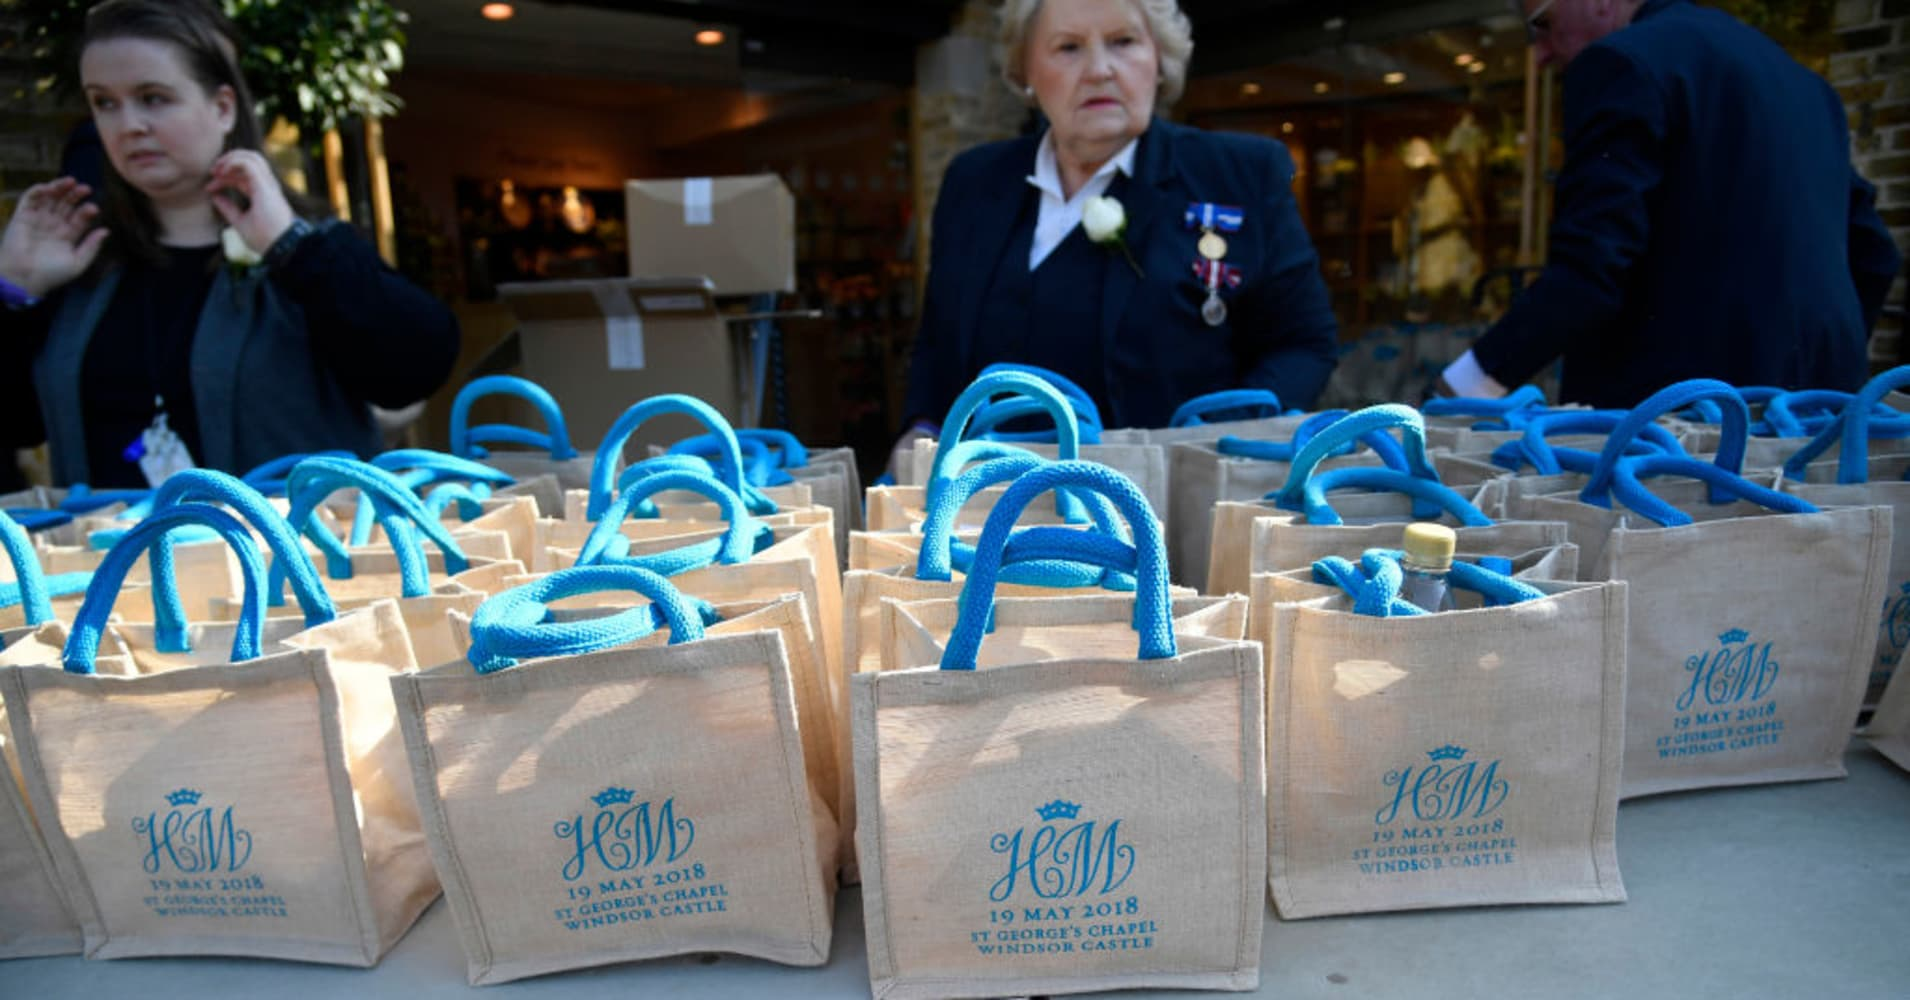 Monogrammed gift bags at Windsor Castle before the wedding of Prince Harry to Meghan Markle on May 19, 2018 in Windsor, England